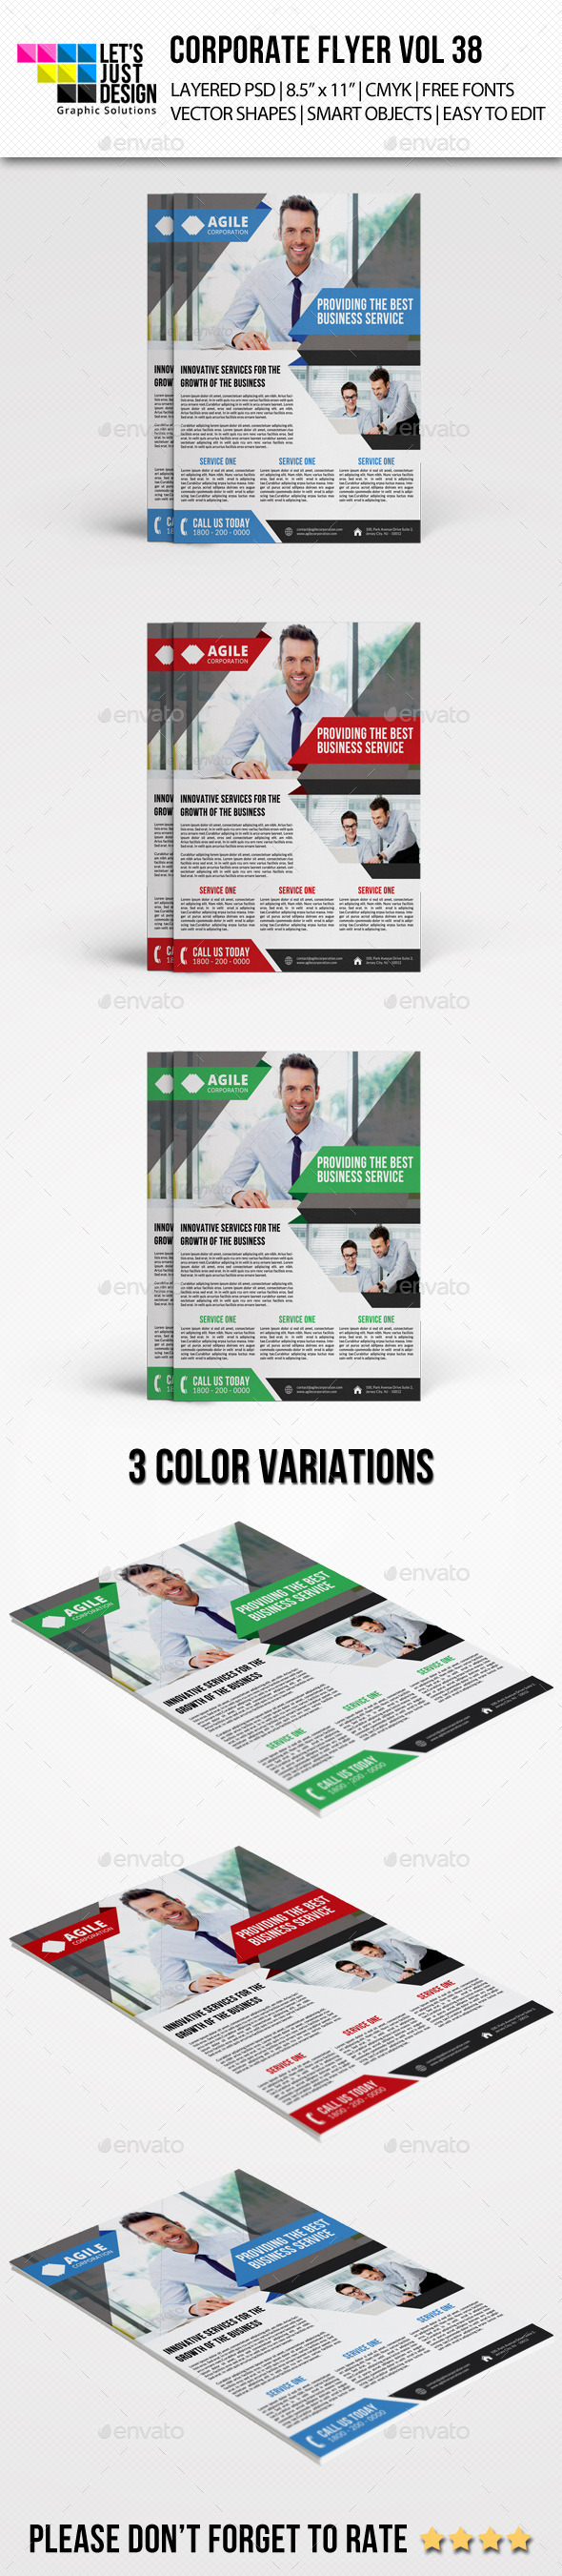 GraphicRiver Corporate Flyer Template Vol 38 9524291